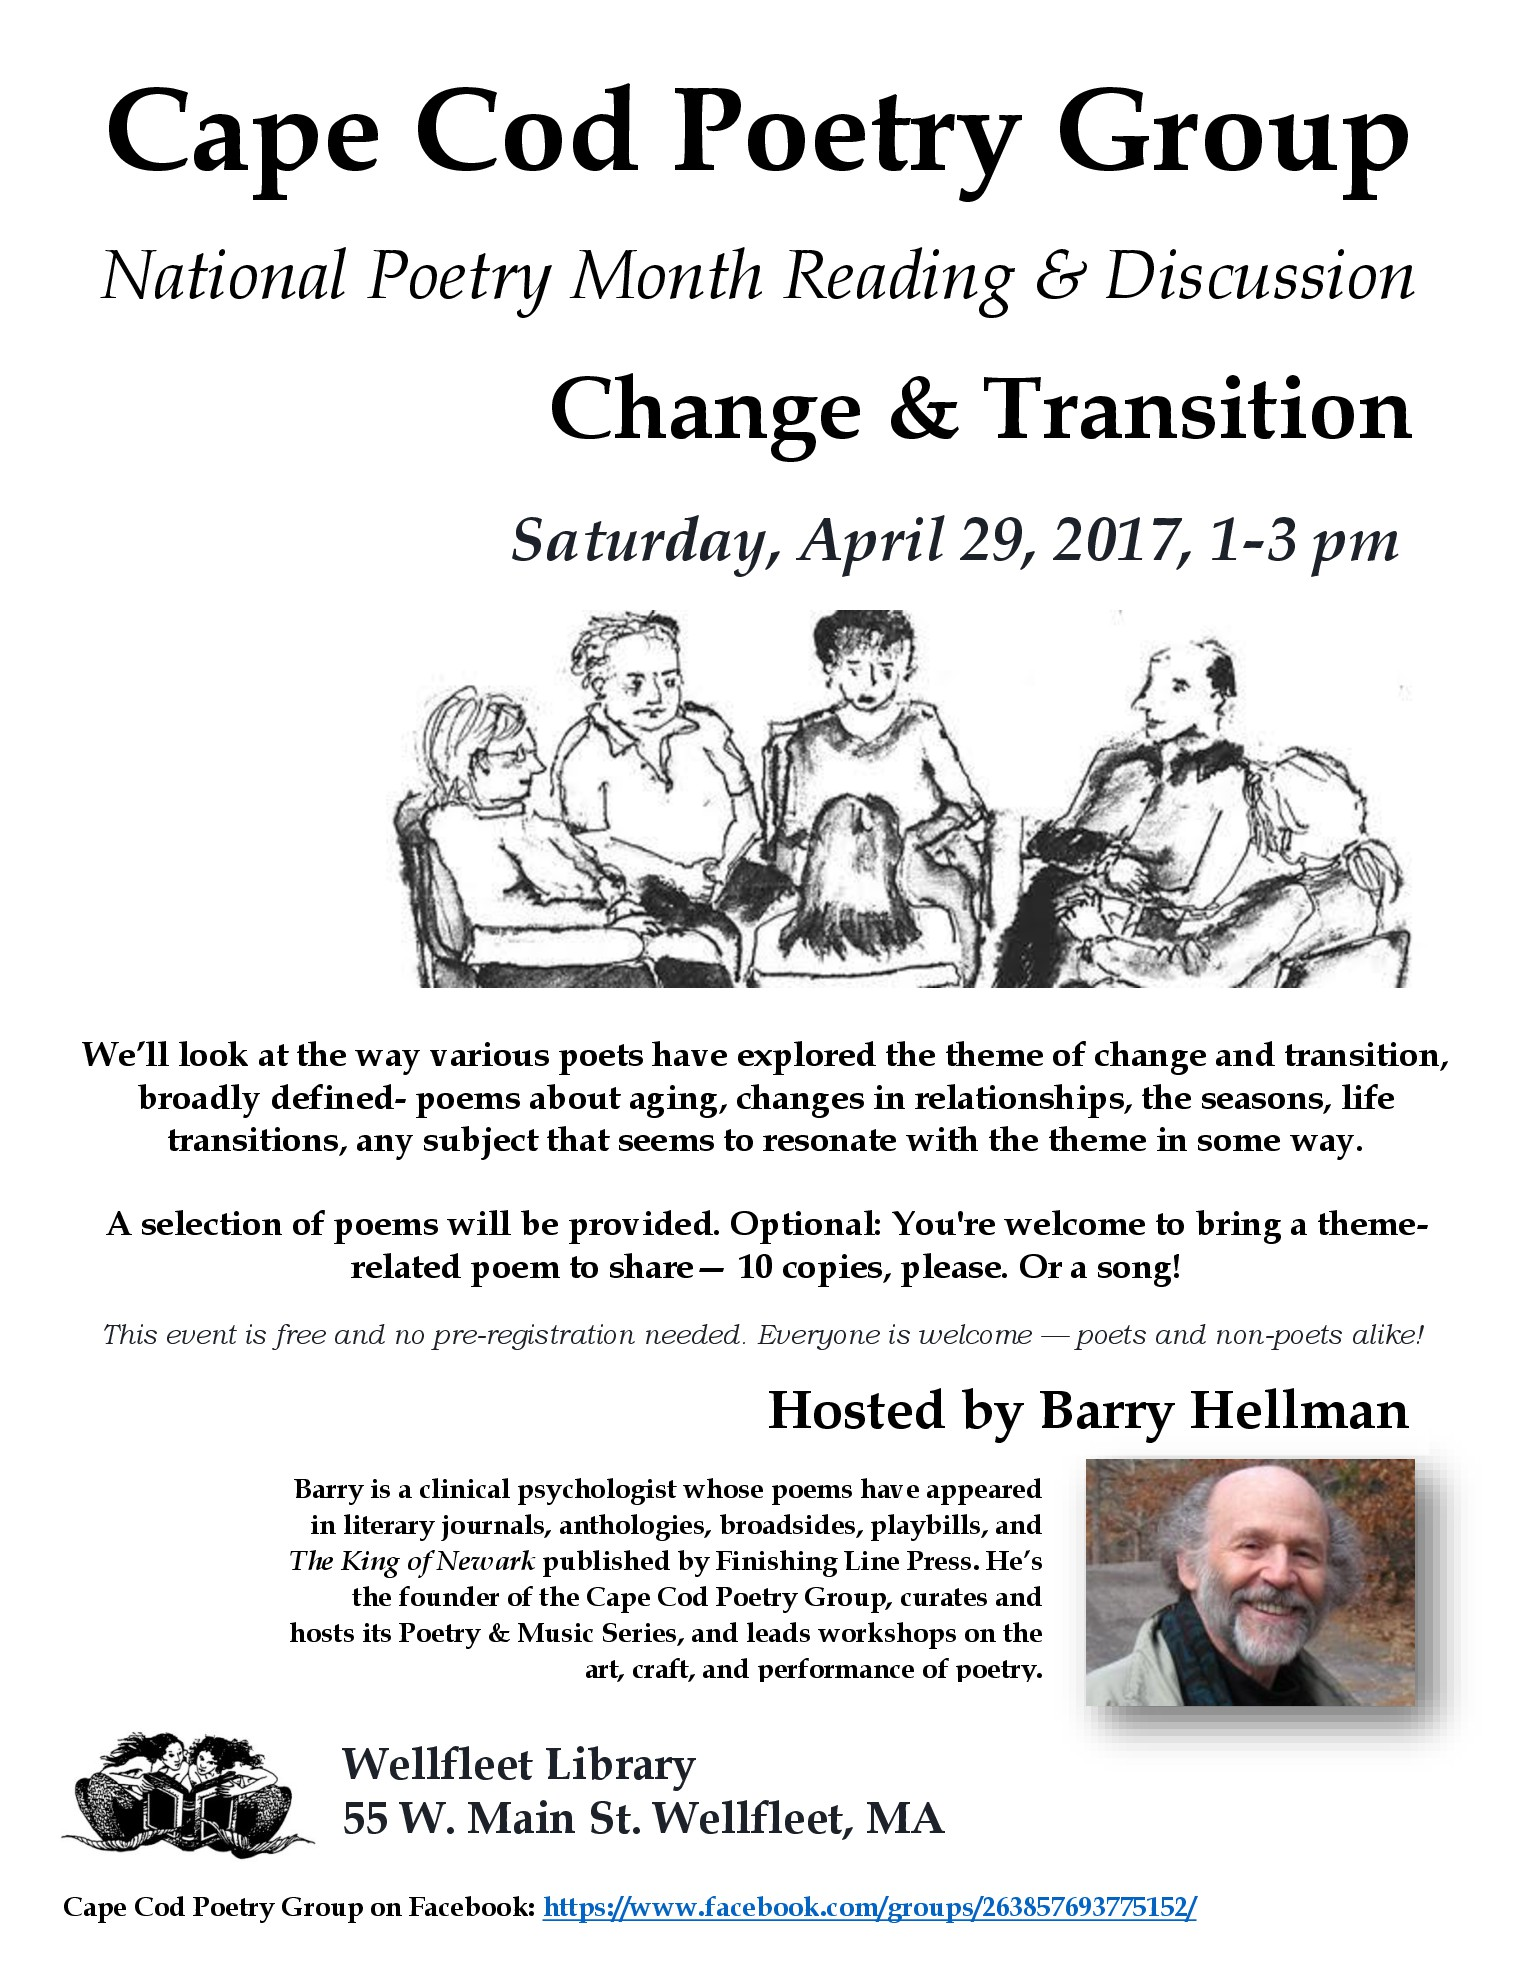 massachusetts statewide poetry calendar full schedule change and transition poster ccpg wellfleet library 29 2017 jpg